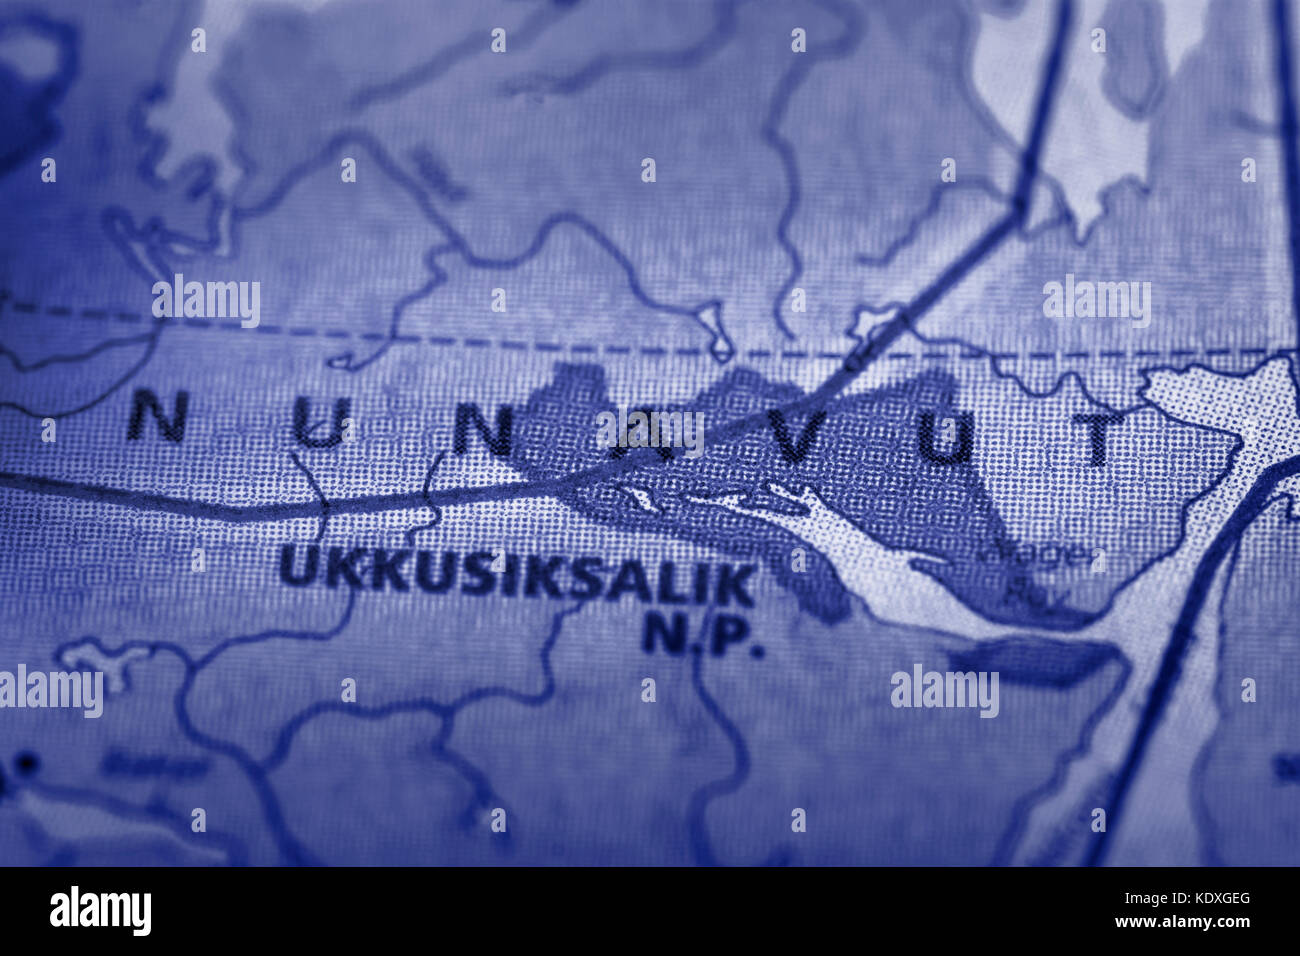 Closeup of the 'Nunavut' territory with a icy blue tone on a political map of Canada. - Stock Image